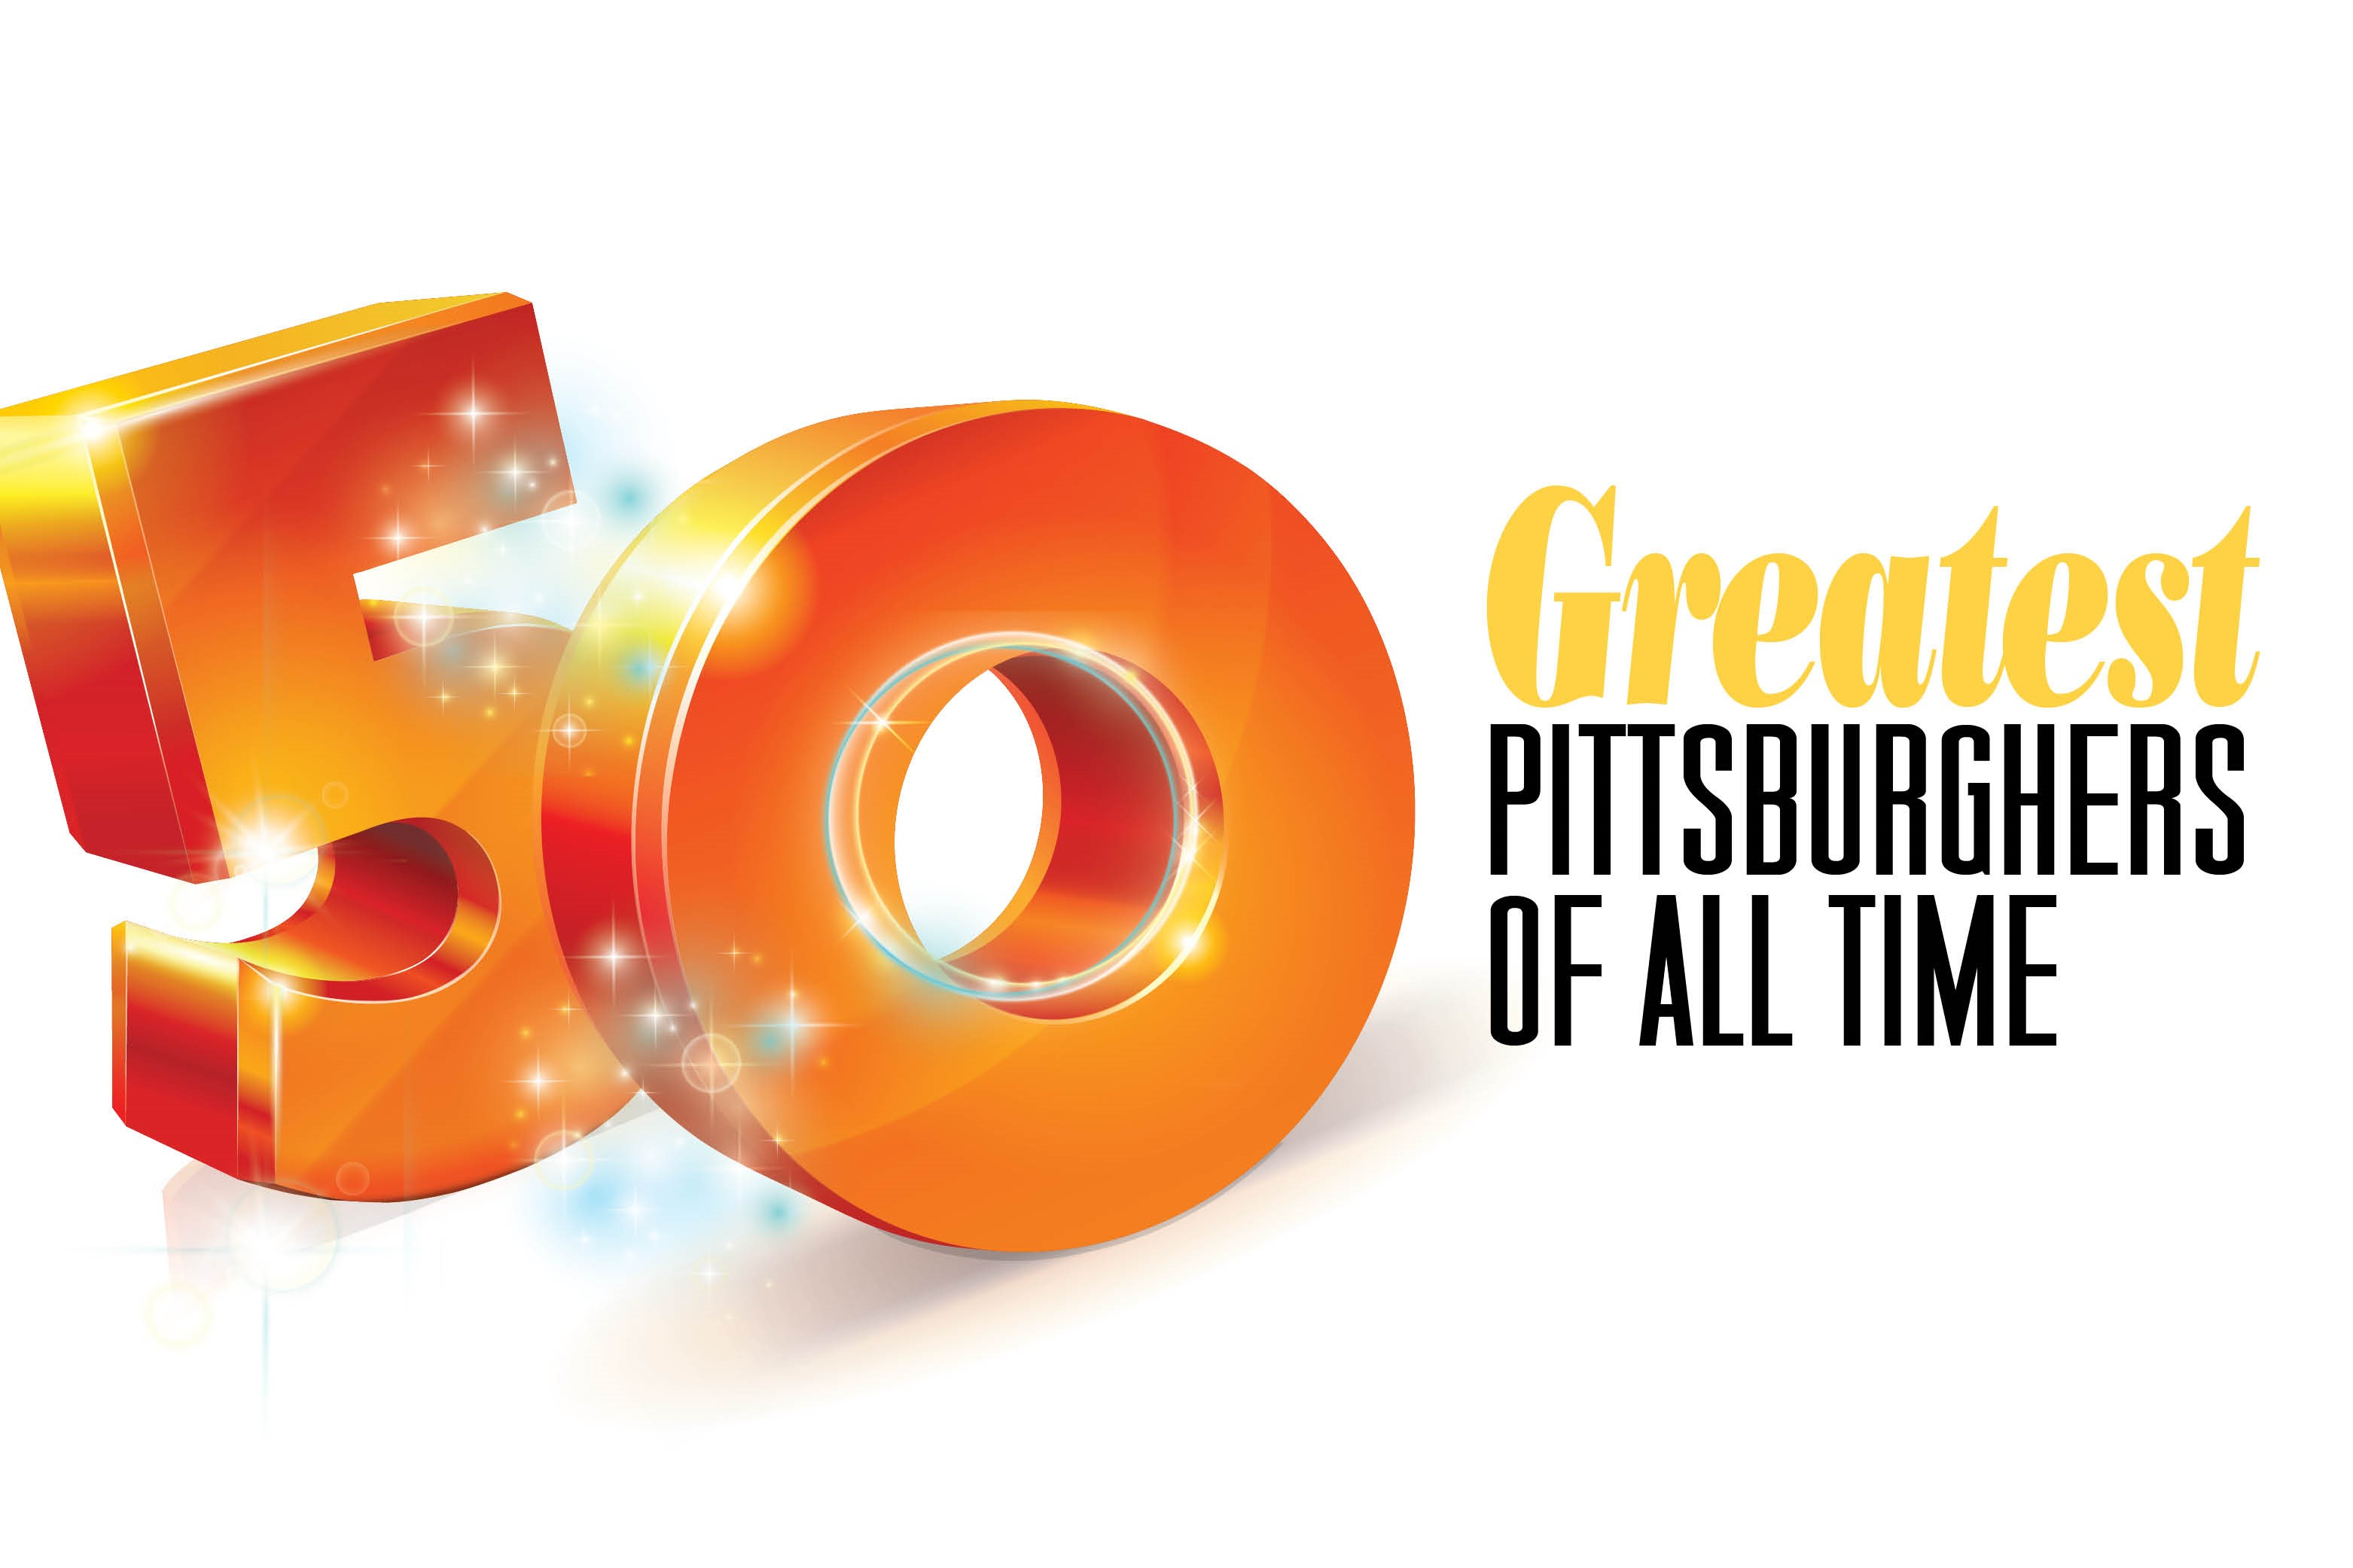 Tickets for 50 Greatest Pittsburghers of All Time in Pittsburgh  from ShowClix